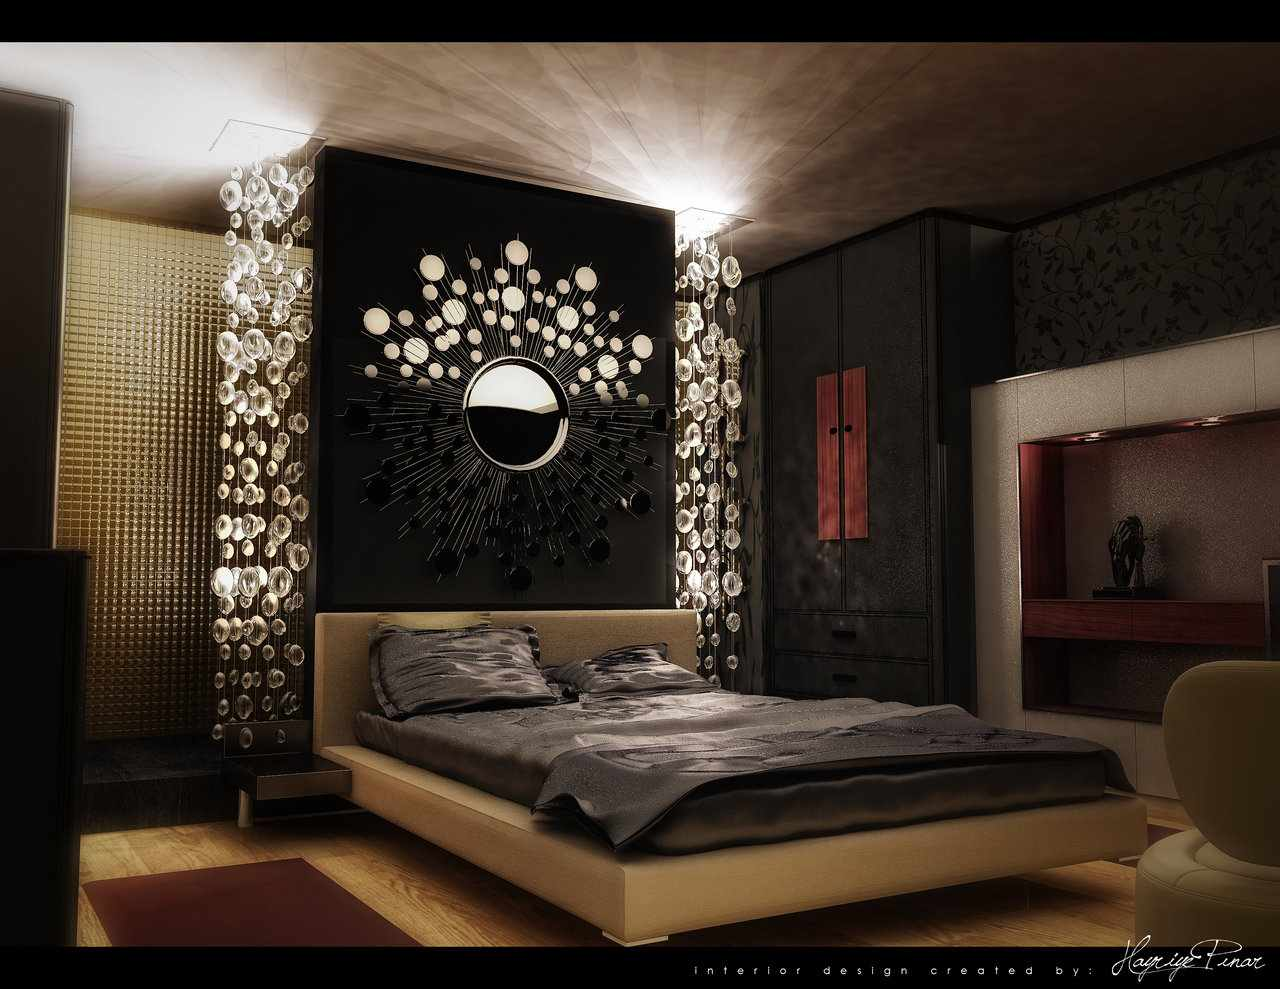 Ikea bedroom ideas ikea bedroom 2014 ideas room design for Bedroom inspirations and ideas